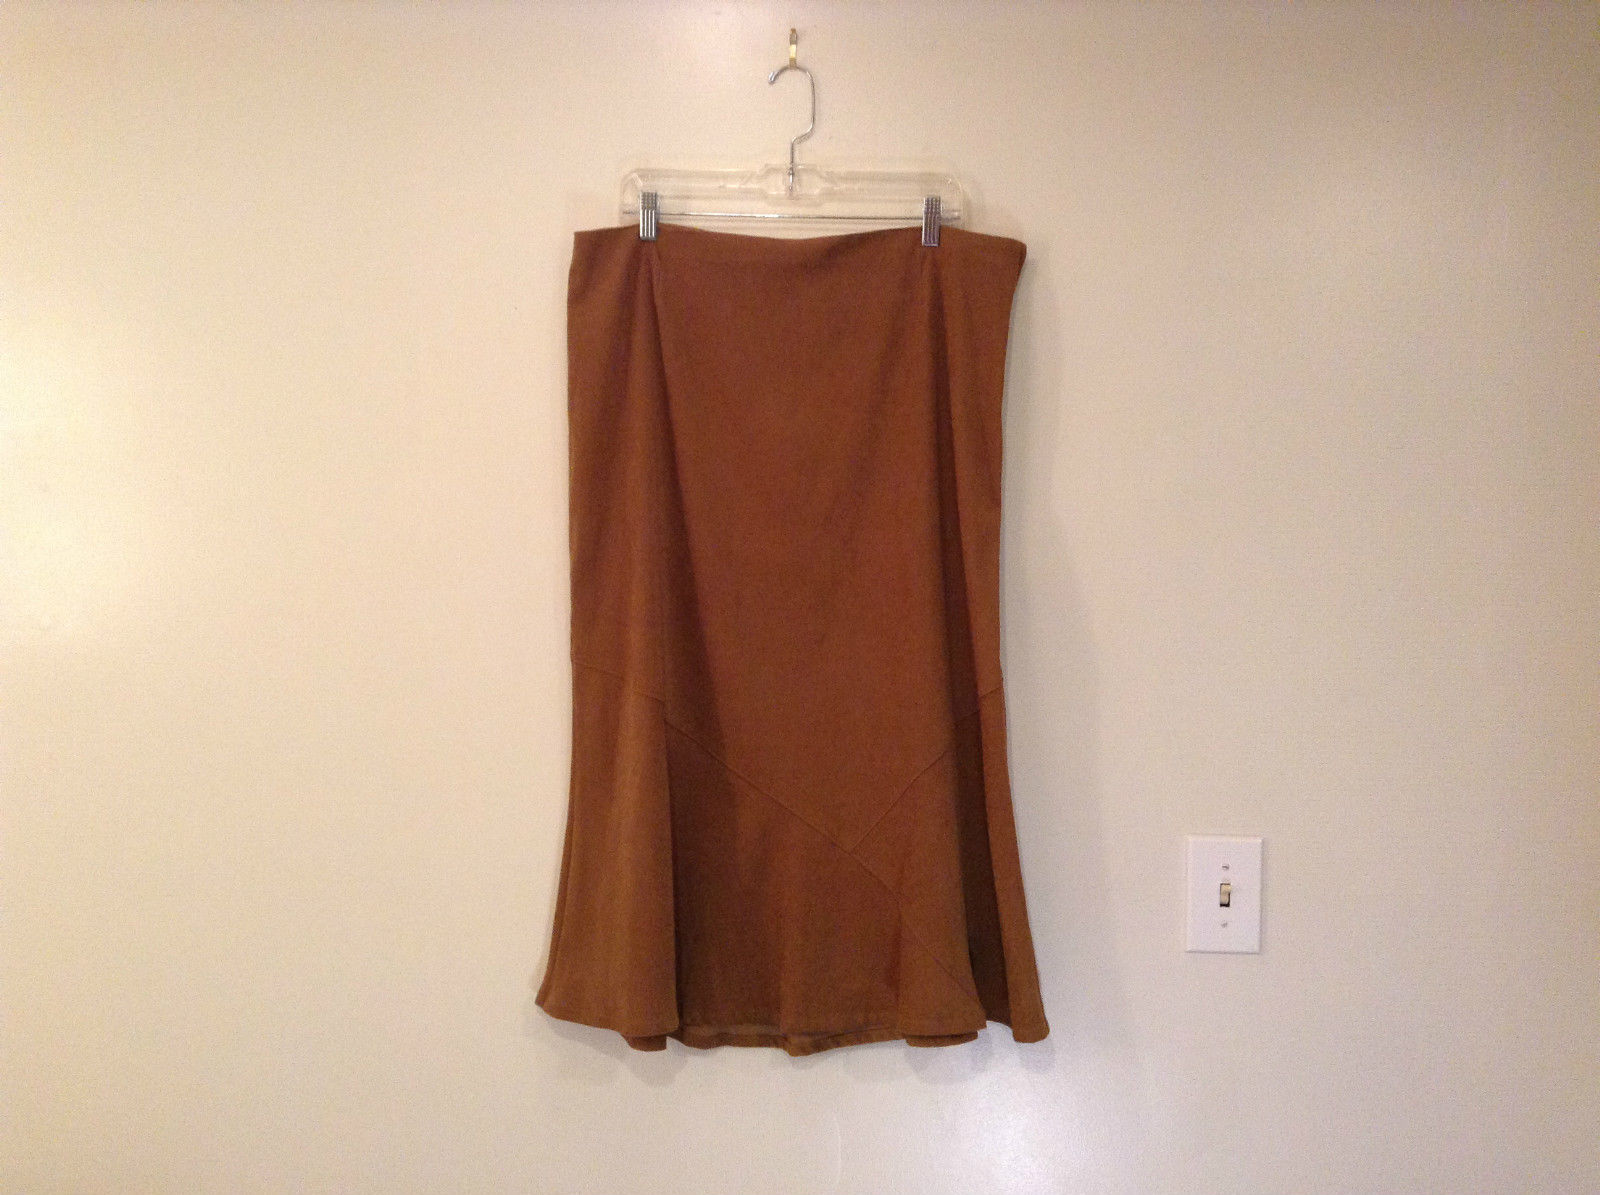 White Stag Petite Size 18 Brown Flare Bottom Skirt